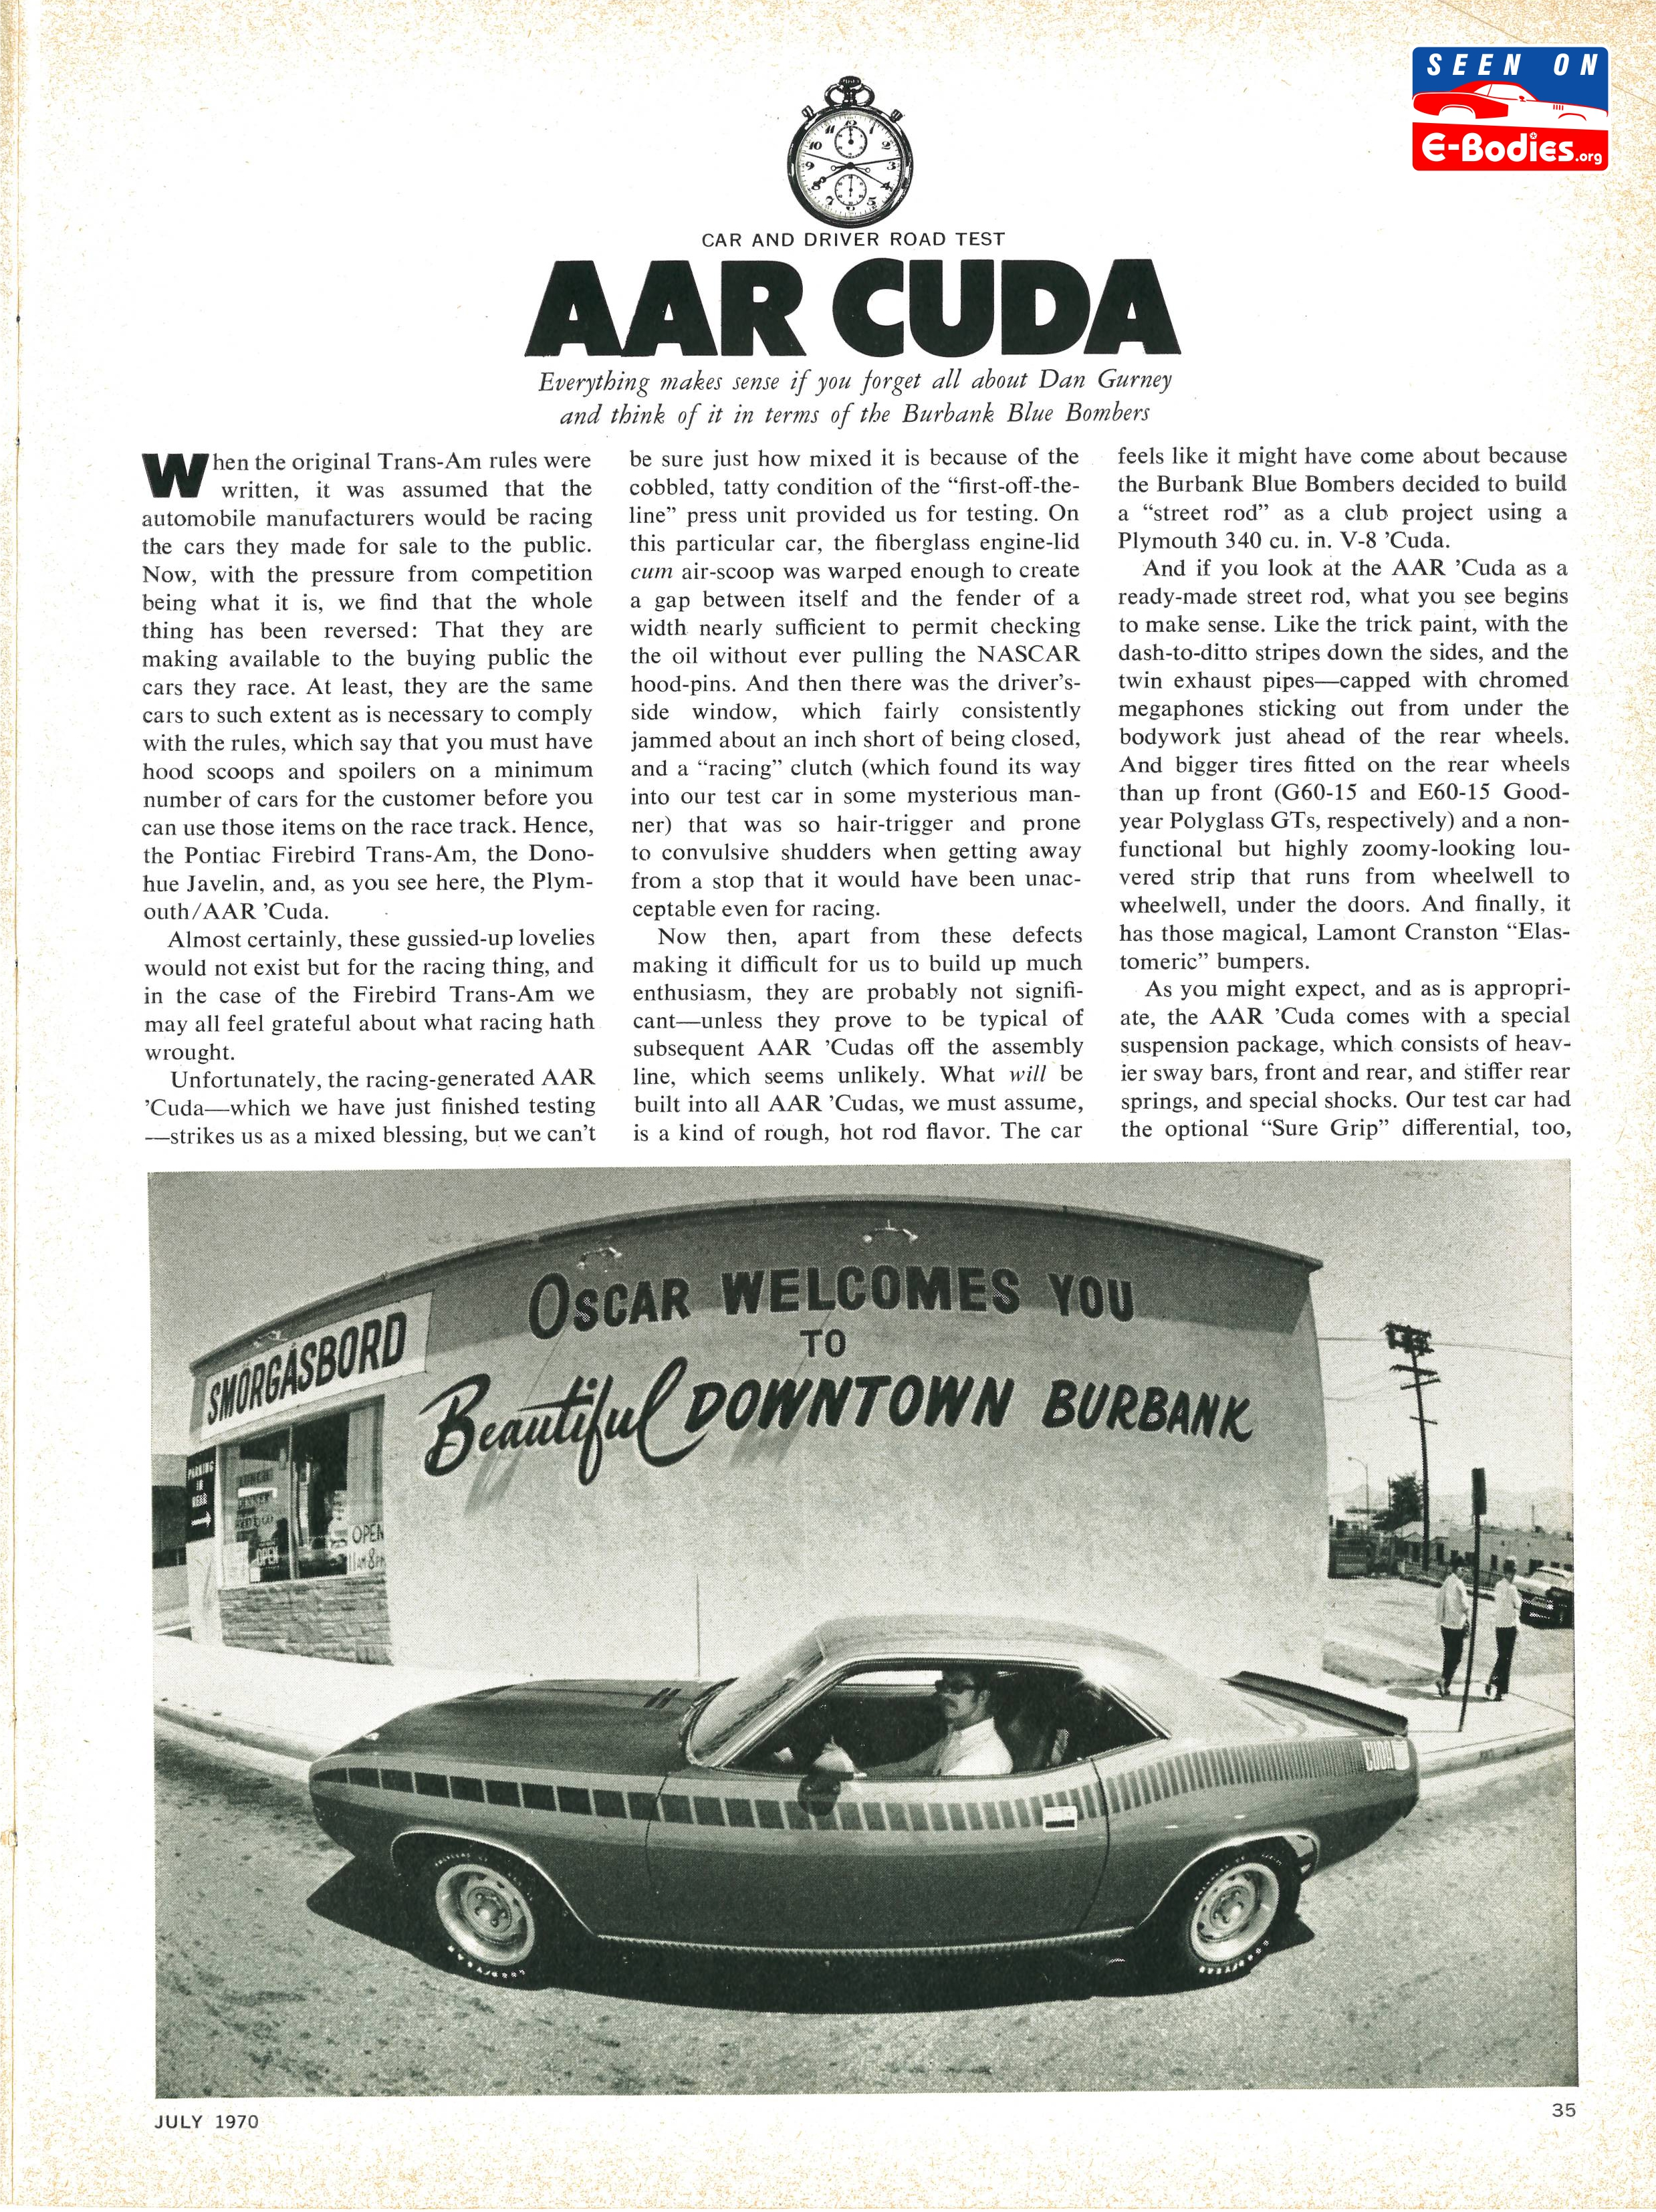 1970 Plymouth AAR Cuda Review Car & Driver July 70 – E-Bodies